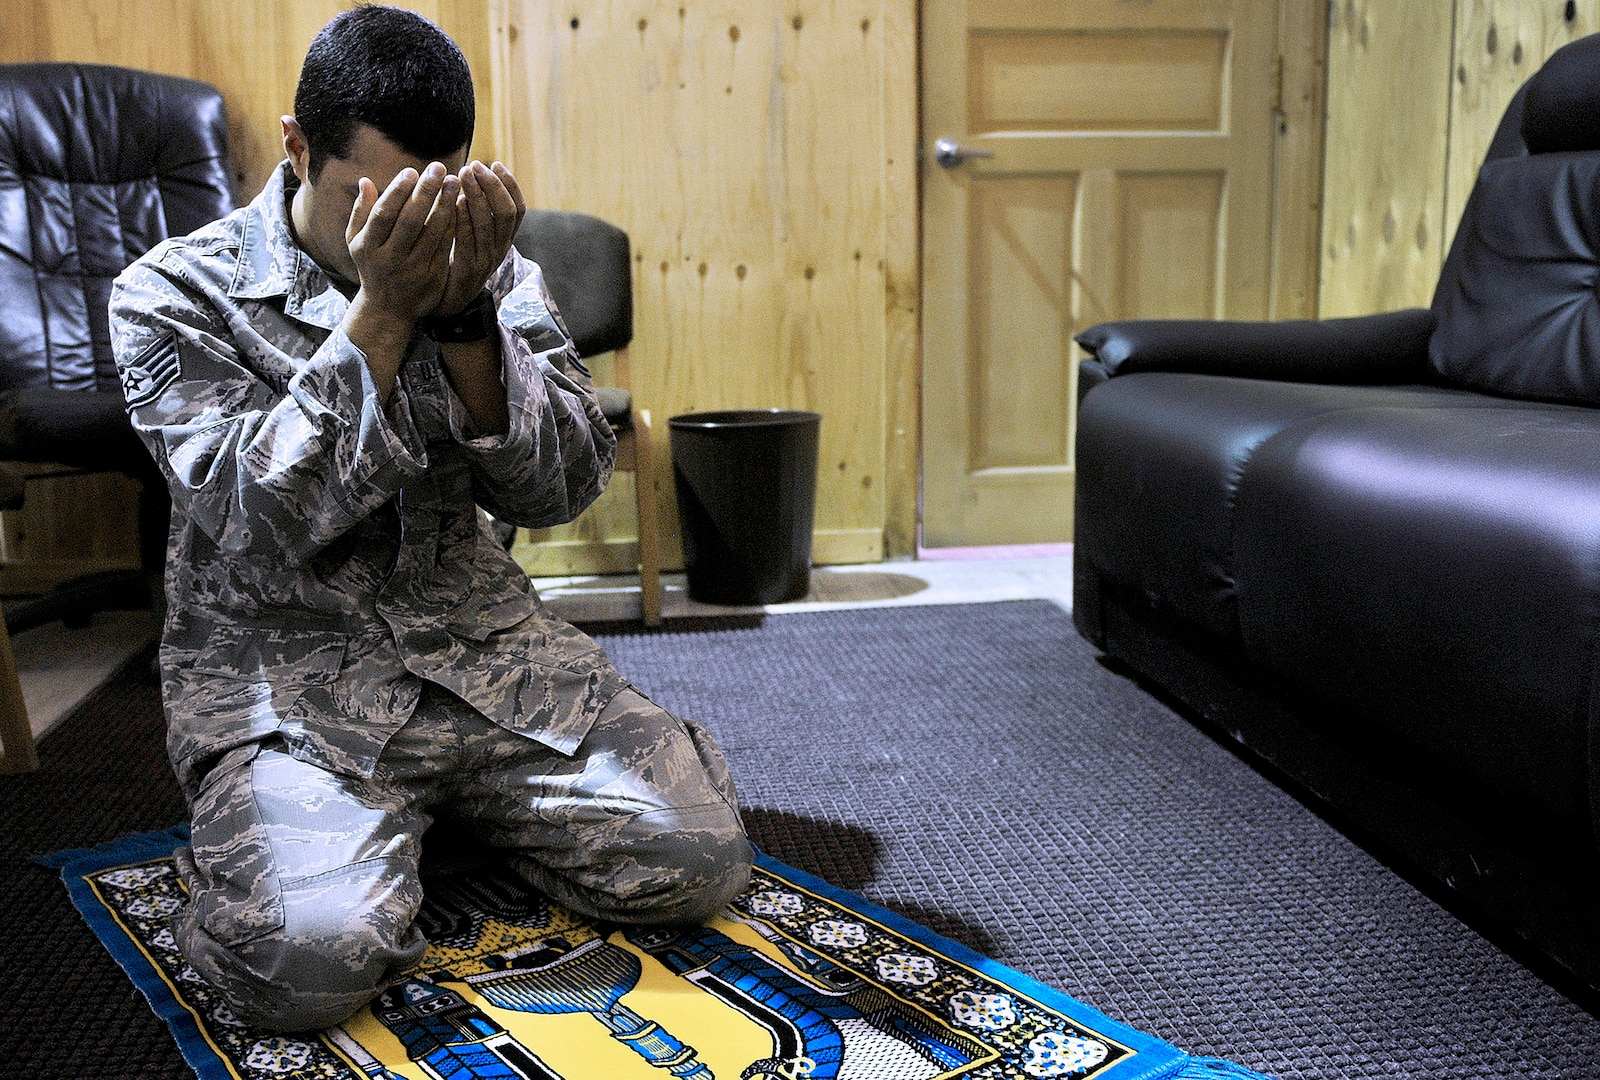 Air Force Staff Sgt. Edger Gaitan, Passenger Service NCOIC, 376th Expeditionary Logistics Readiness Squadron, prays in the distinguished visitor suite during his shift at the Passenger Terminal, Transit Center at Manas, Kyrgyzstan.